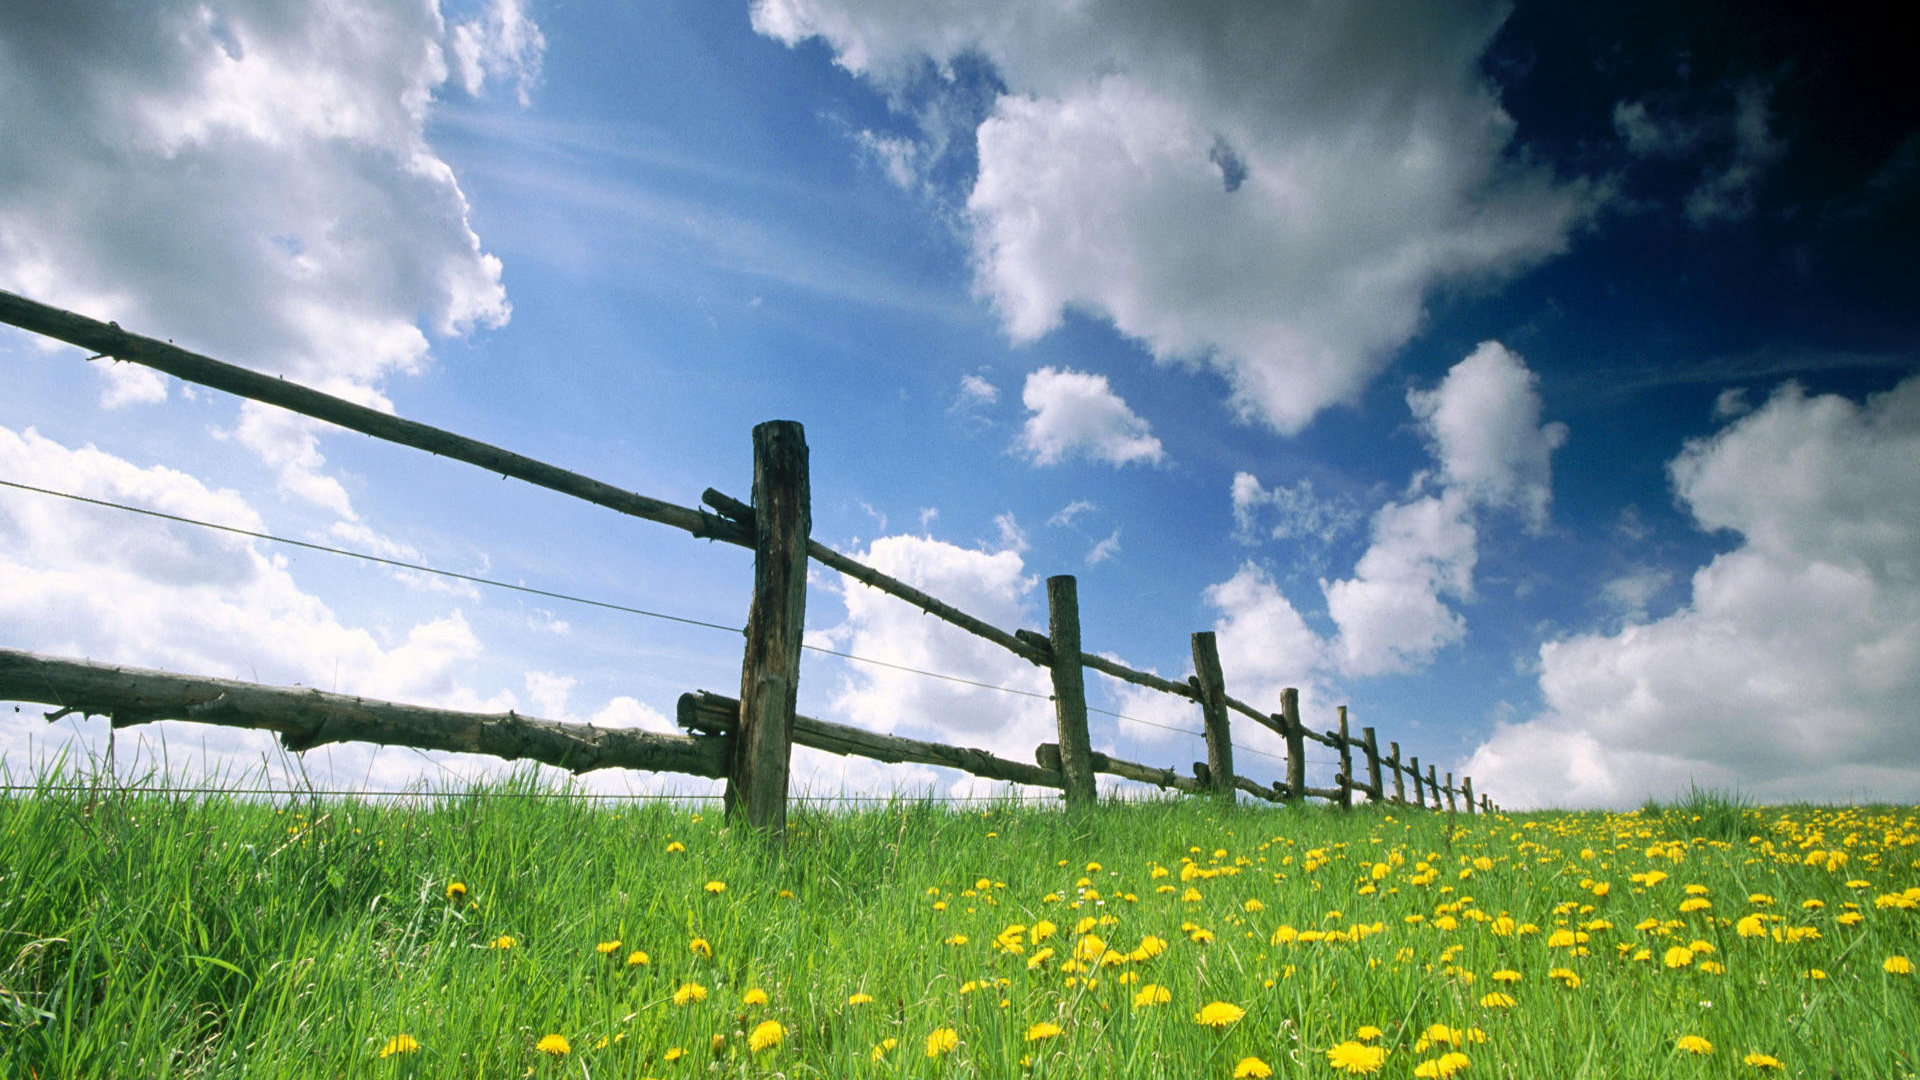 click to free download the wallpaper--Images of Natural Flowers - A Field of Yellow and Blooming Flowers, the Blue Sky Above, Protective Fences  1920X1080 free wallpaper download